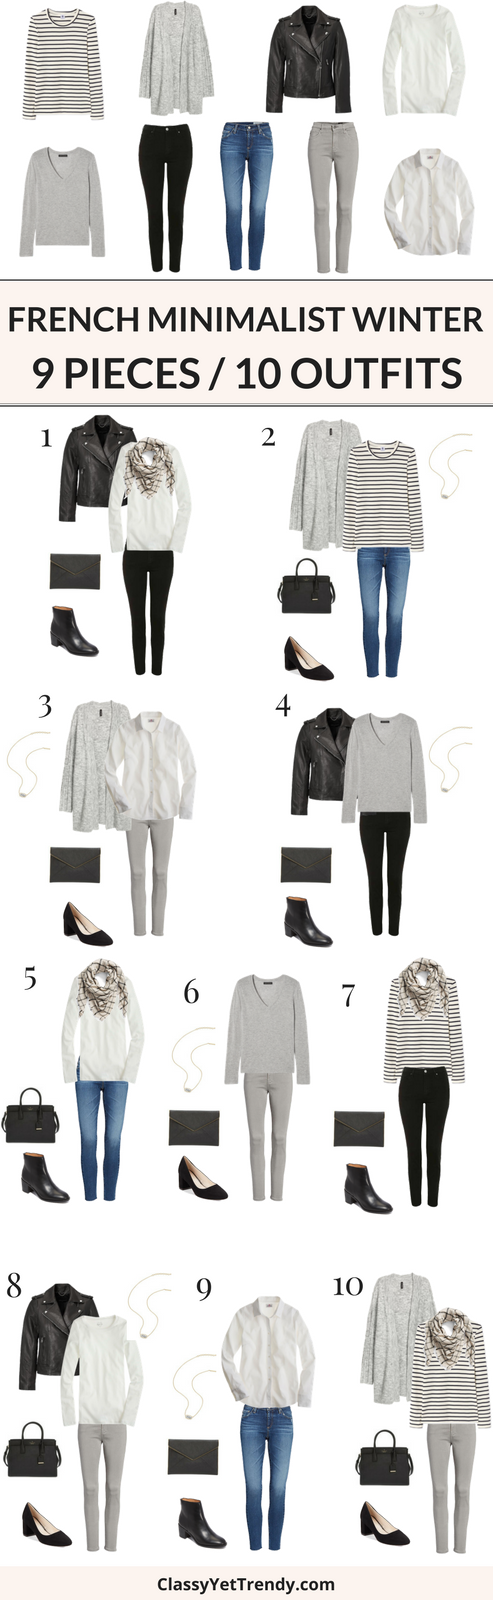 9 Pieces 10 Outfits (French Minimalist Style Winter)